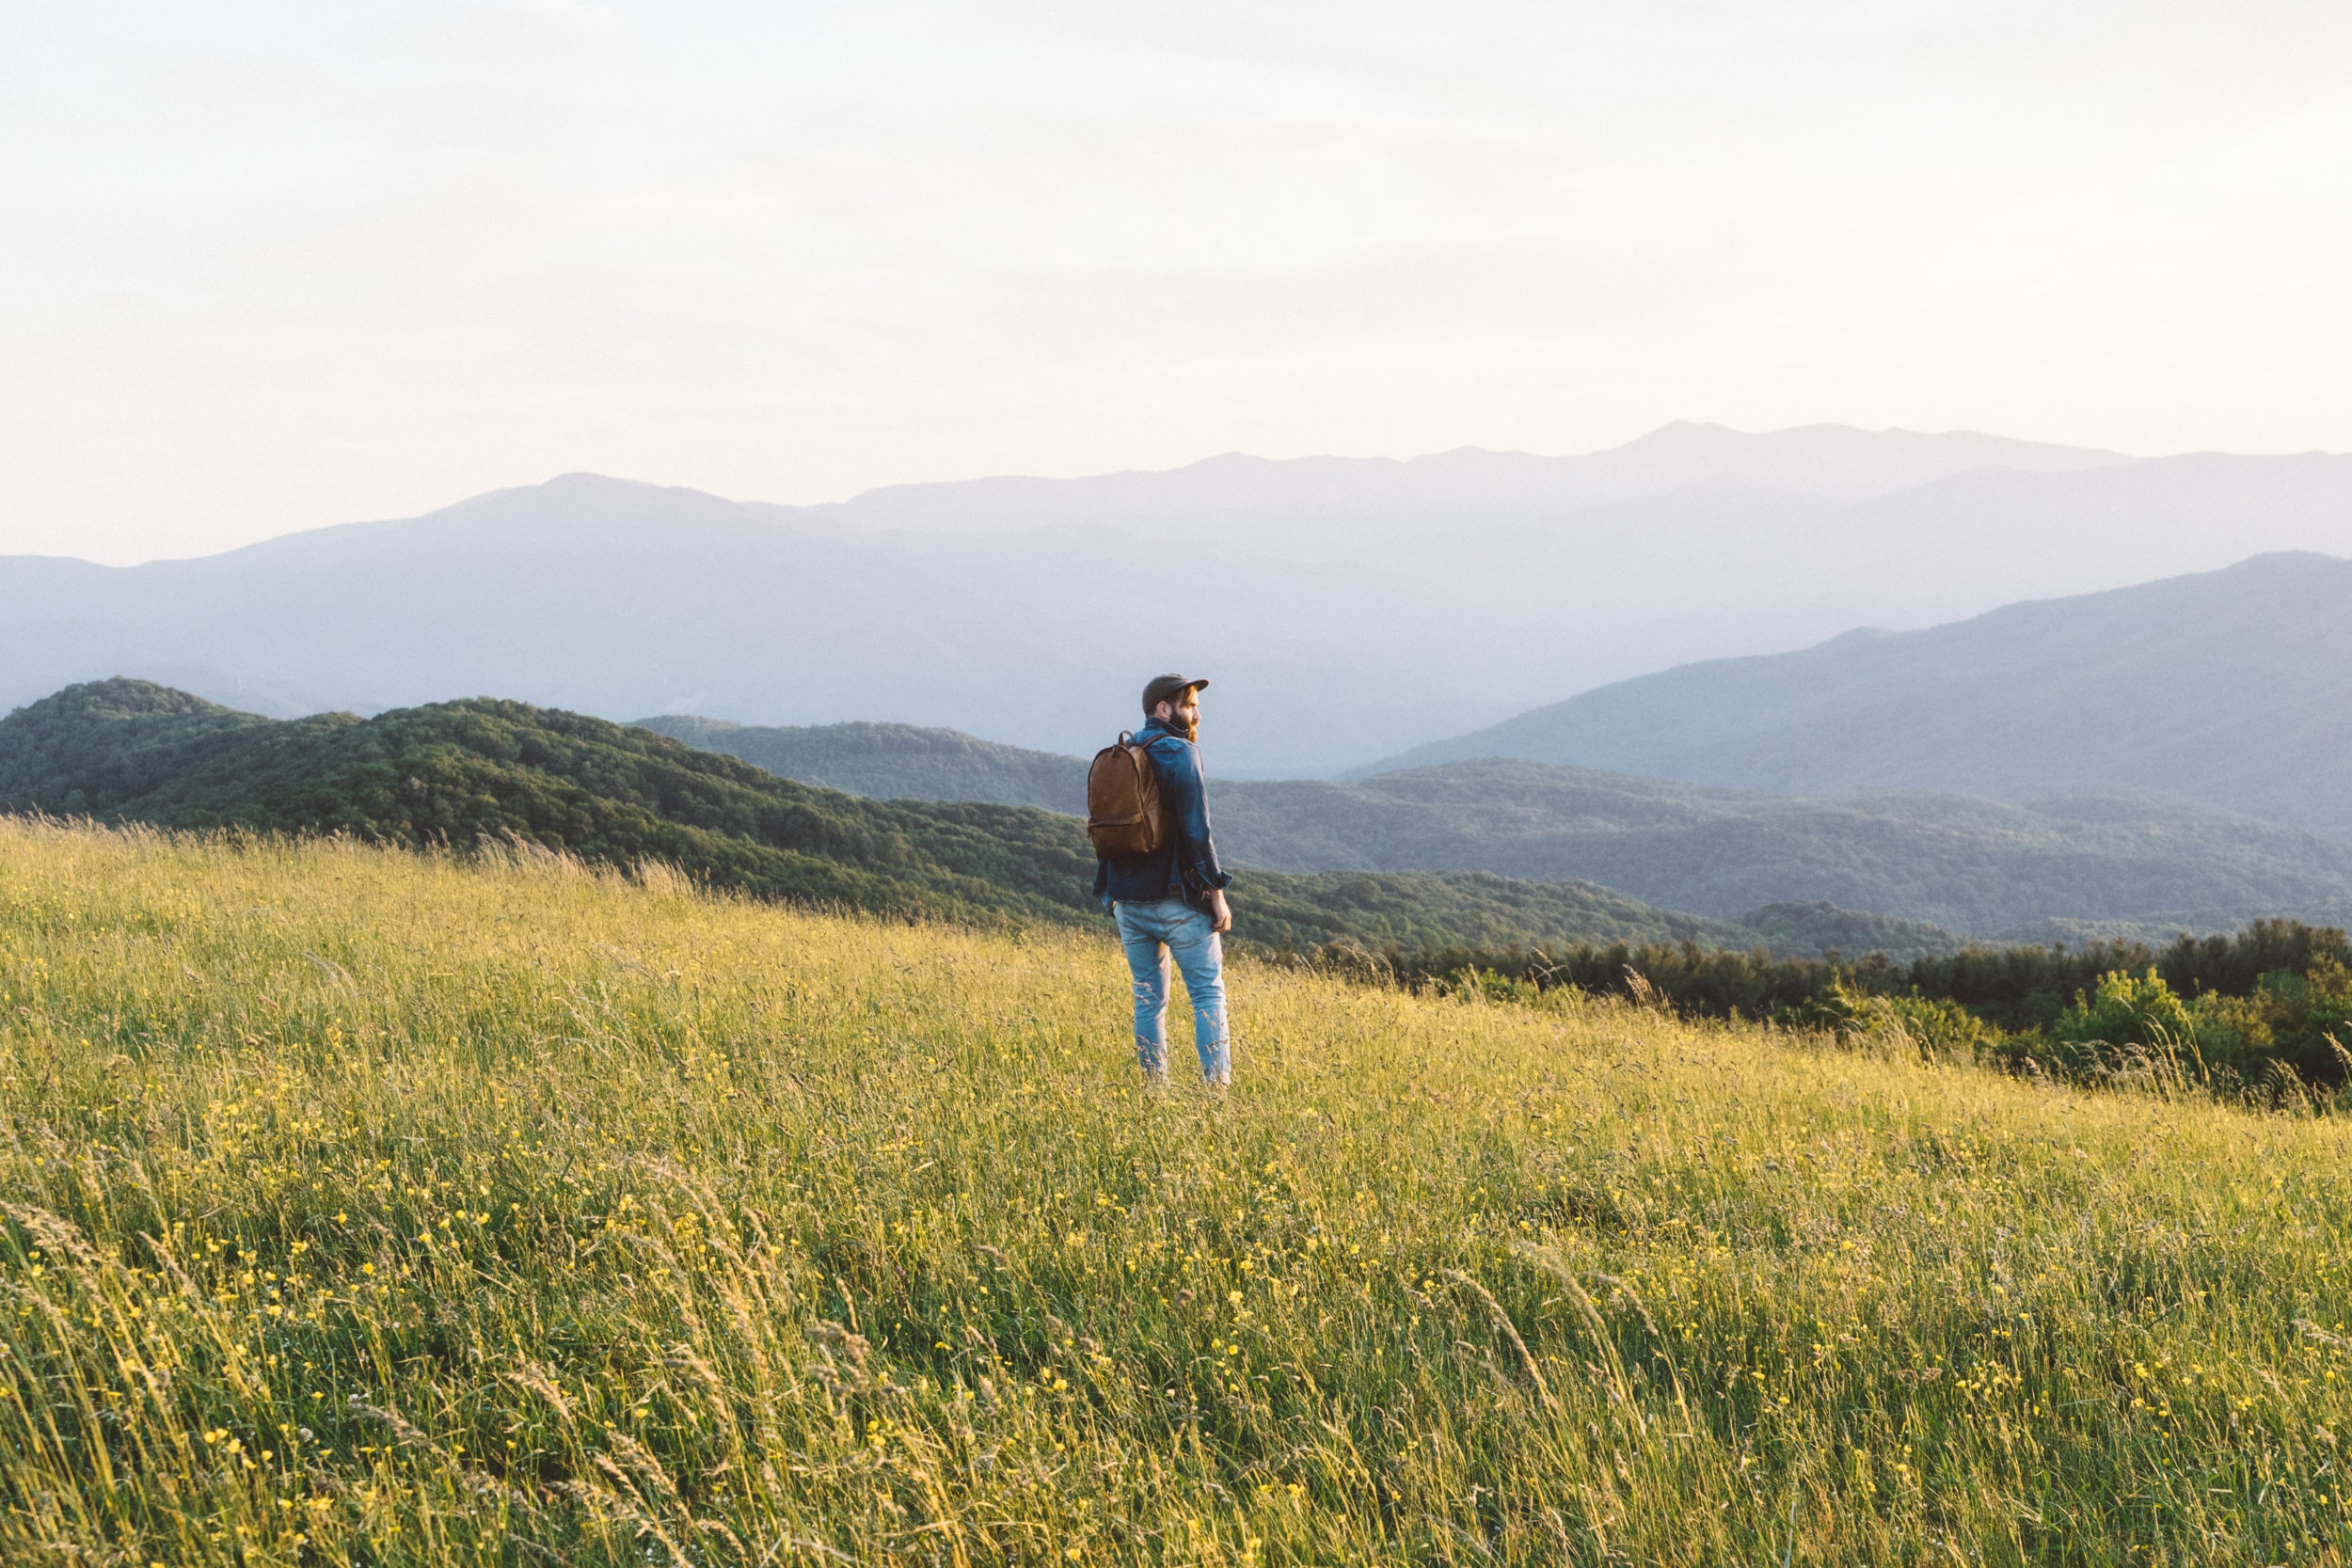 man standing on grass field in mountain